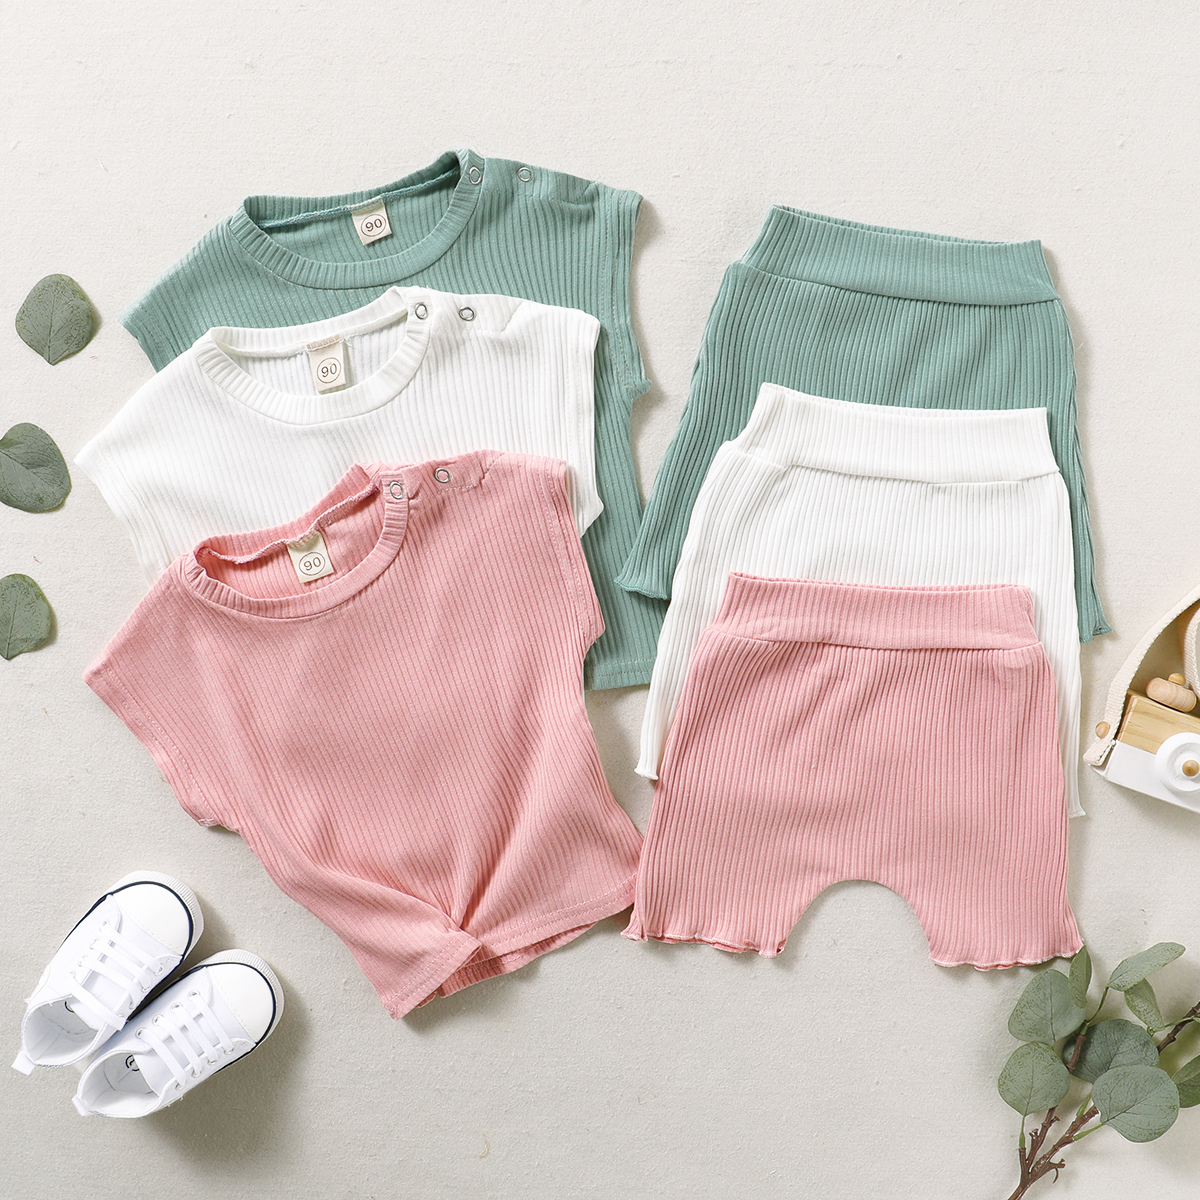 Ribbed Shorts Pants 2PCS Toddler Summer Clothes Set Infant Girl Knitted Outfits Solid Sleeveless Ruffle Crop Top